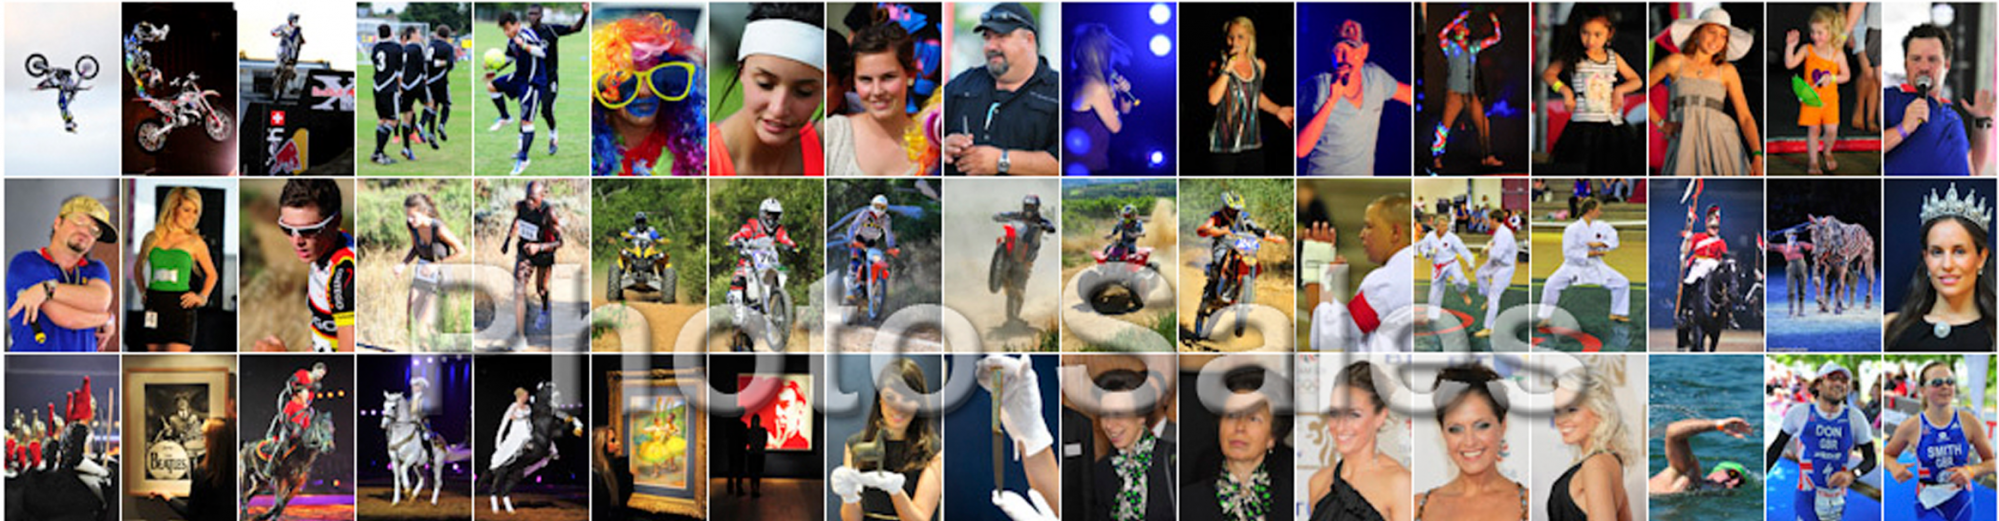 EVENT PHOTO SALES ONLINE | EVENT PHOTOGRAPHY